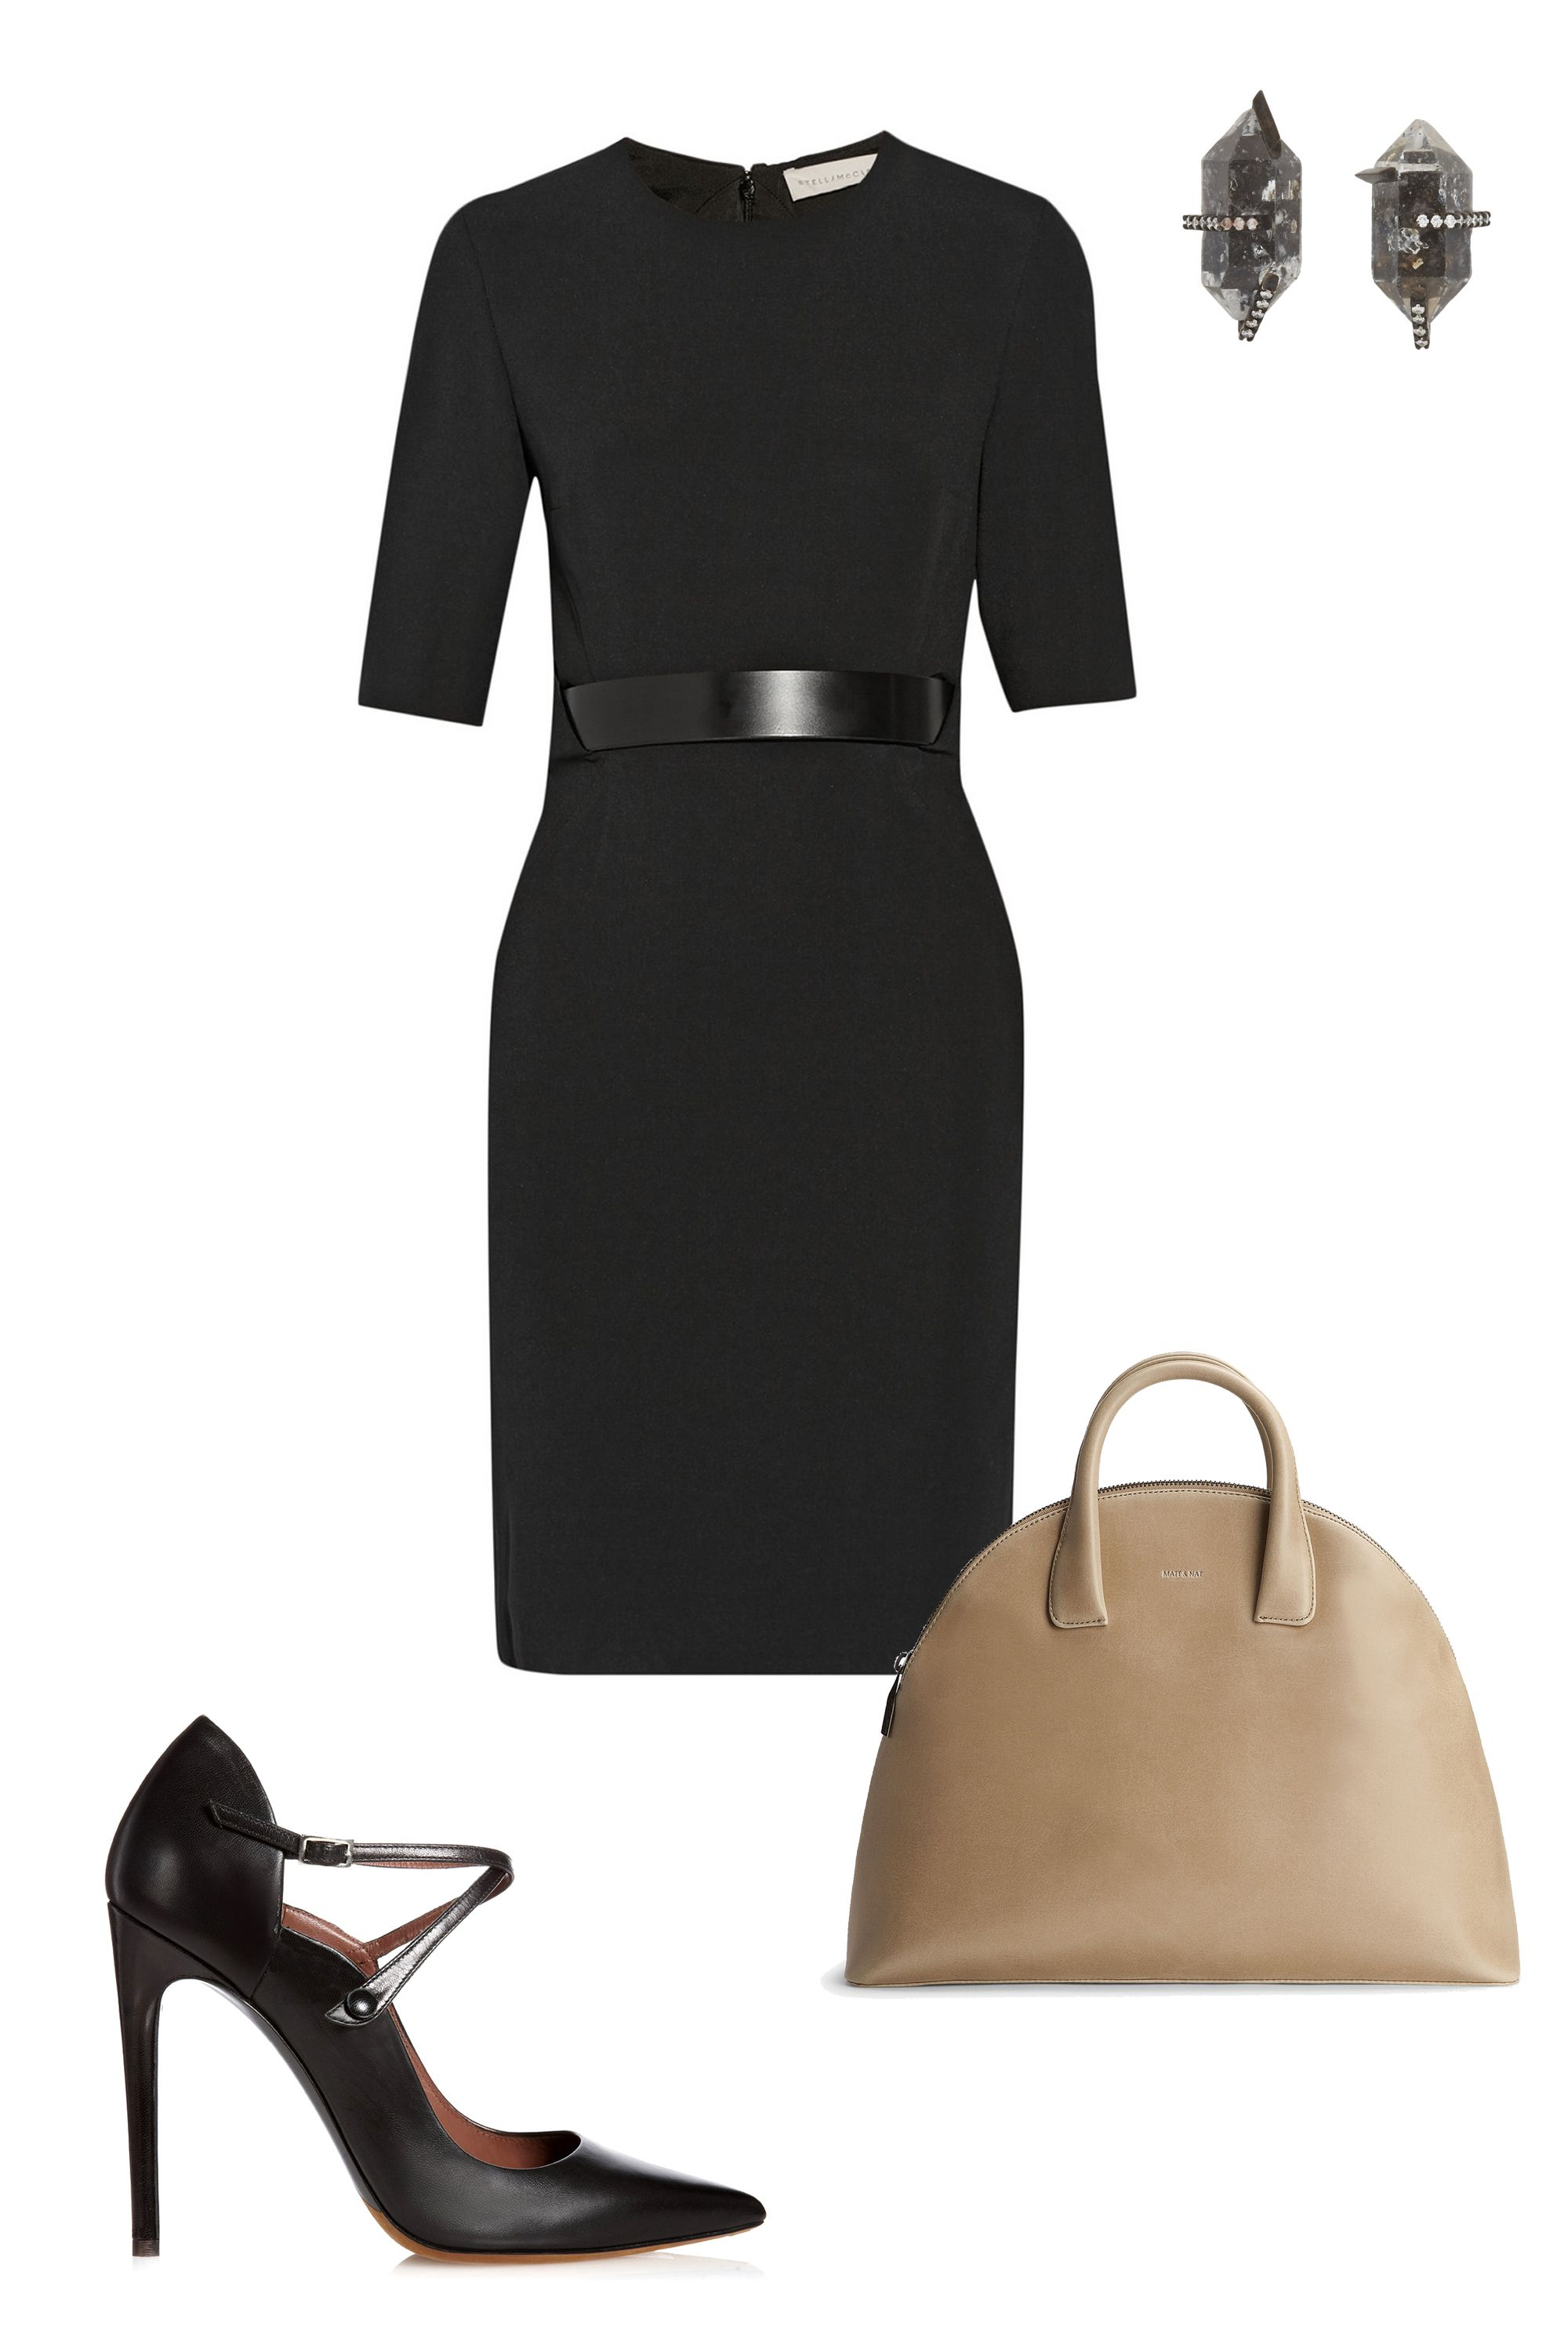 "<p>They say you should dress for the job you want. A fitted dress and an intimidating pair of pumps scream ""business mogul,"" so start prepping for your days as the future CEO of Google. </p><p class=""MsoNormal"">Stella McCartney Andra Stretch-Cady Dress, $2,340; <a href=""http://www.net-a-porter.com/us/en/product/457660"">net-a-porter.com</a><o:p></o:p></p><p class=""MsoNormal"">Tabitha Simmons Mari, $795; <a href=""http://shop.tabithasimmons.com/mari-black-kidskin/"">tabithasimmons.com</a><o:p></o:p></p><p class=""MsoNormal"">Matt and Nat Nemesis, $158; <a href=""http://mattandnat.com/shop/handbags/all-handbags/nemesis-cardamom"">mattandnat.com</a><o:p></o:p></p><p class=""MsoNormal"">Monique Péan Diamond, White Gold & Herkimer Stud Earrings, $4,750; <a href=""http://www.barneys.com/monique-p%C3%A9an-diamond%2C-white-gold-herkimer-stud-earrings-503334529.html#start=4"">barneys.com</a></p>"